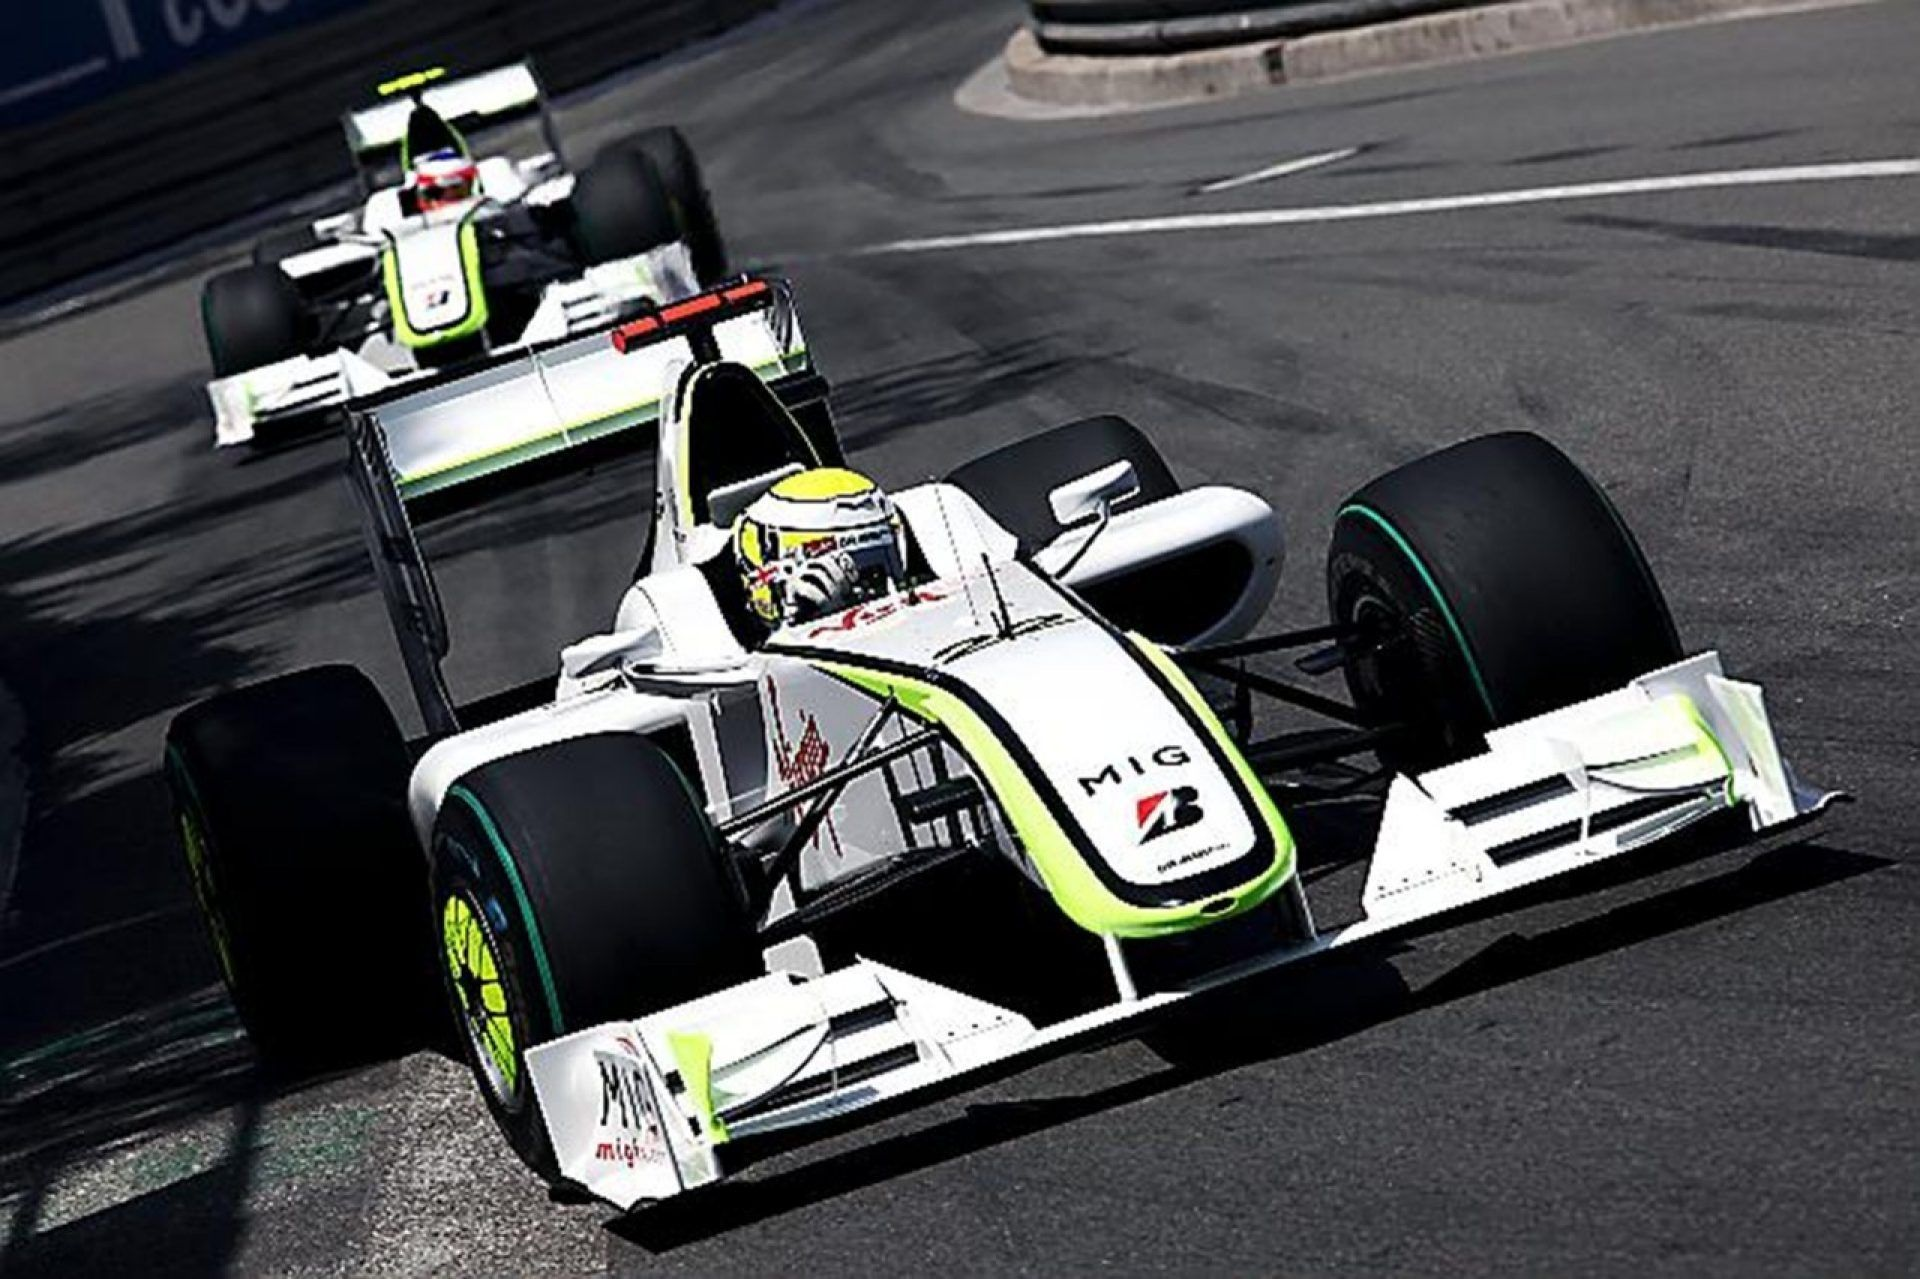 Jenson Button, Brawn GP, British GP, F1